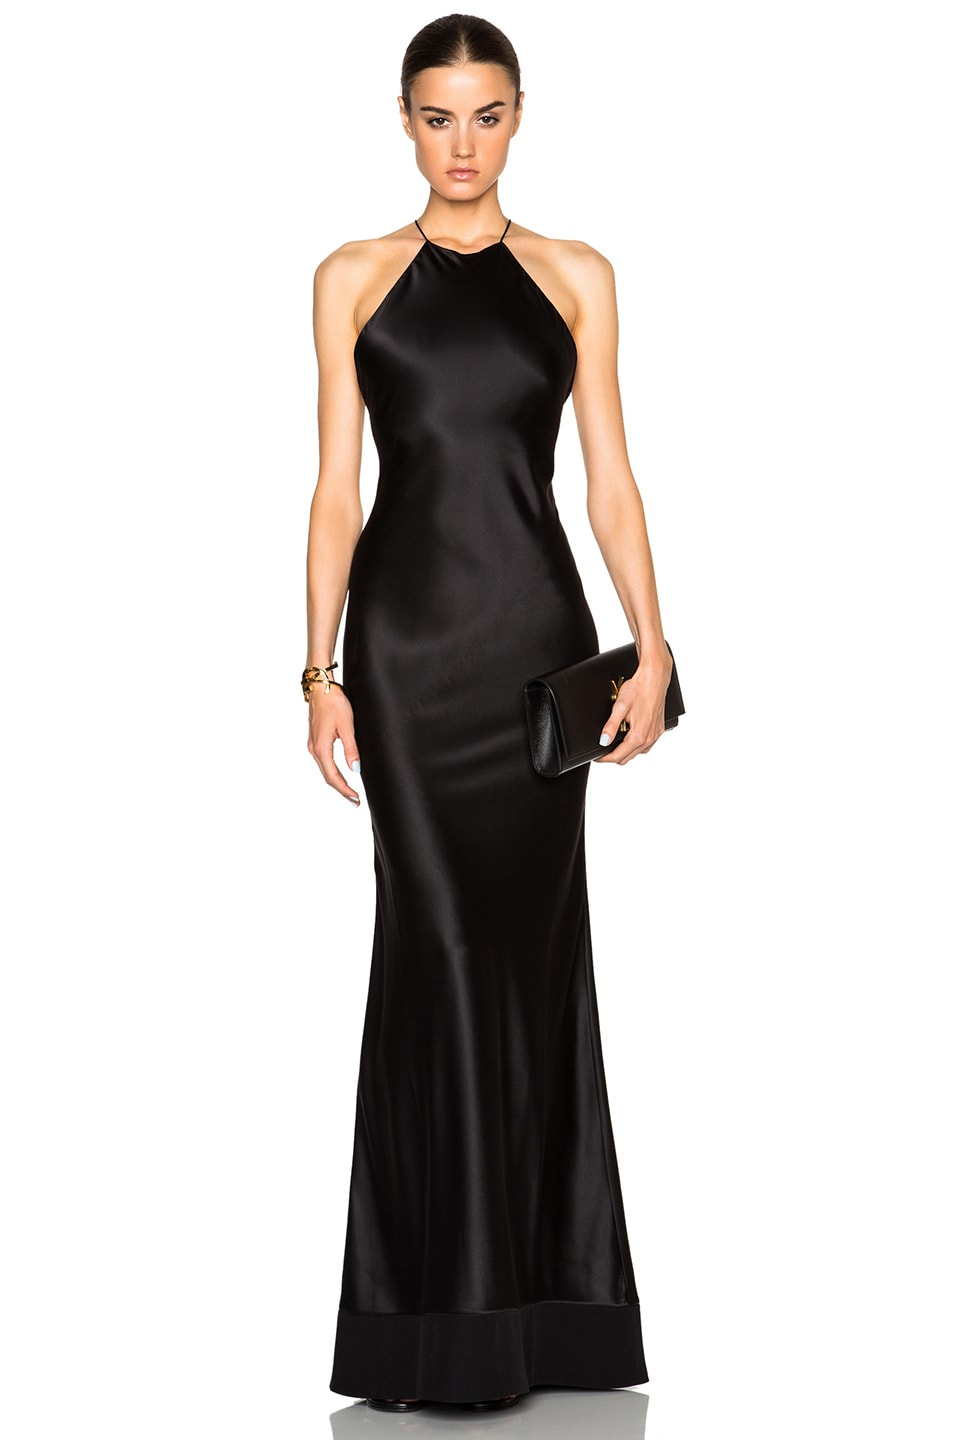 Calvin Klein Collection Fawn Satin Silk Charmeuse Gown in Black | FWRD